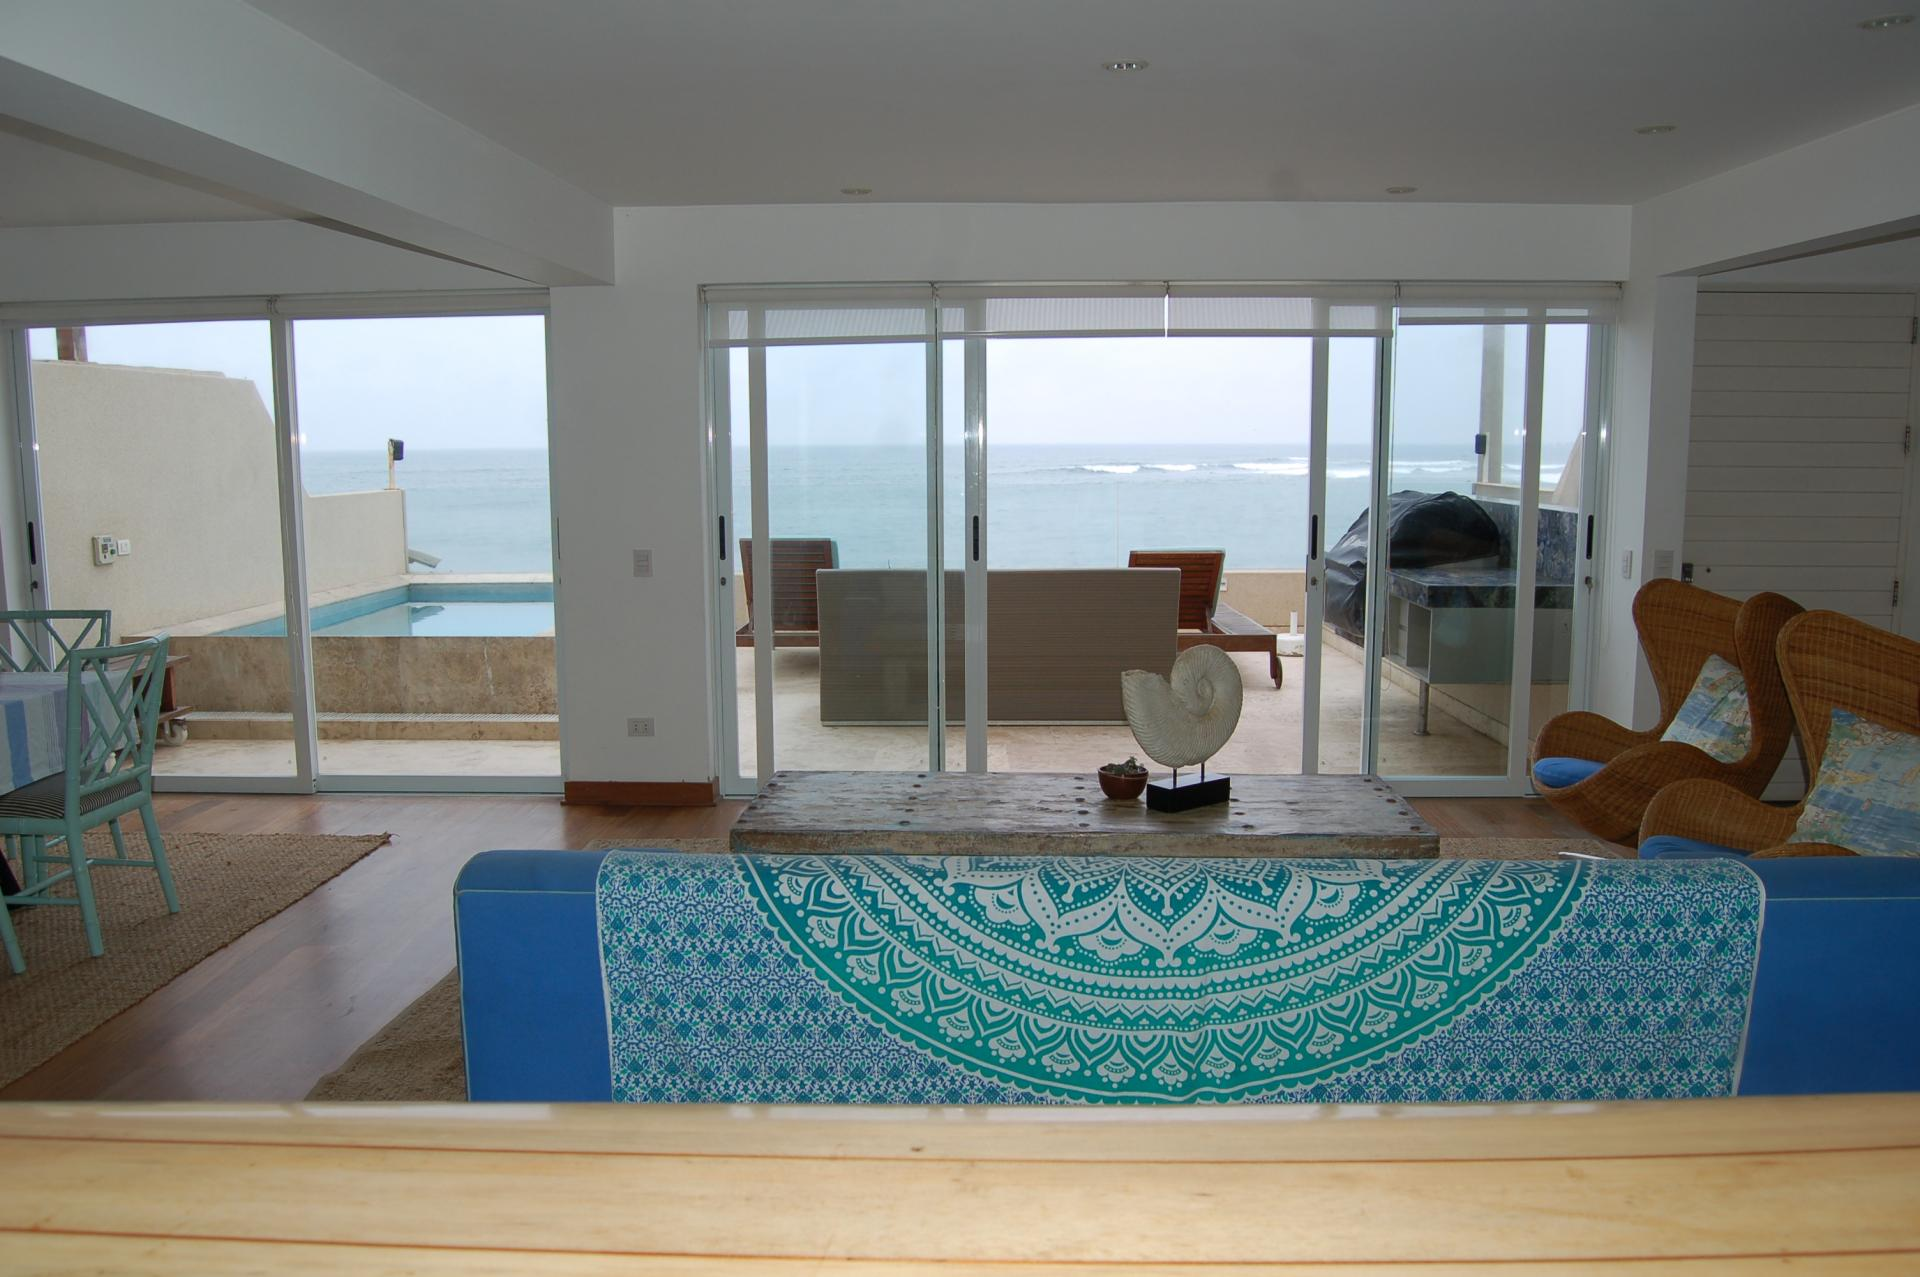 LIMA, PUNTA HERMOSA, PLAYA SEÑORITAS, 6 BEDROOM BEACH HOUSE, FOR SALE